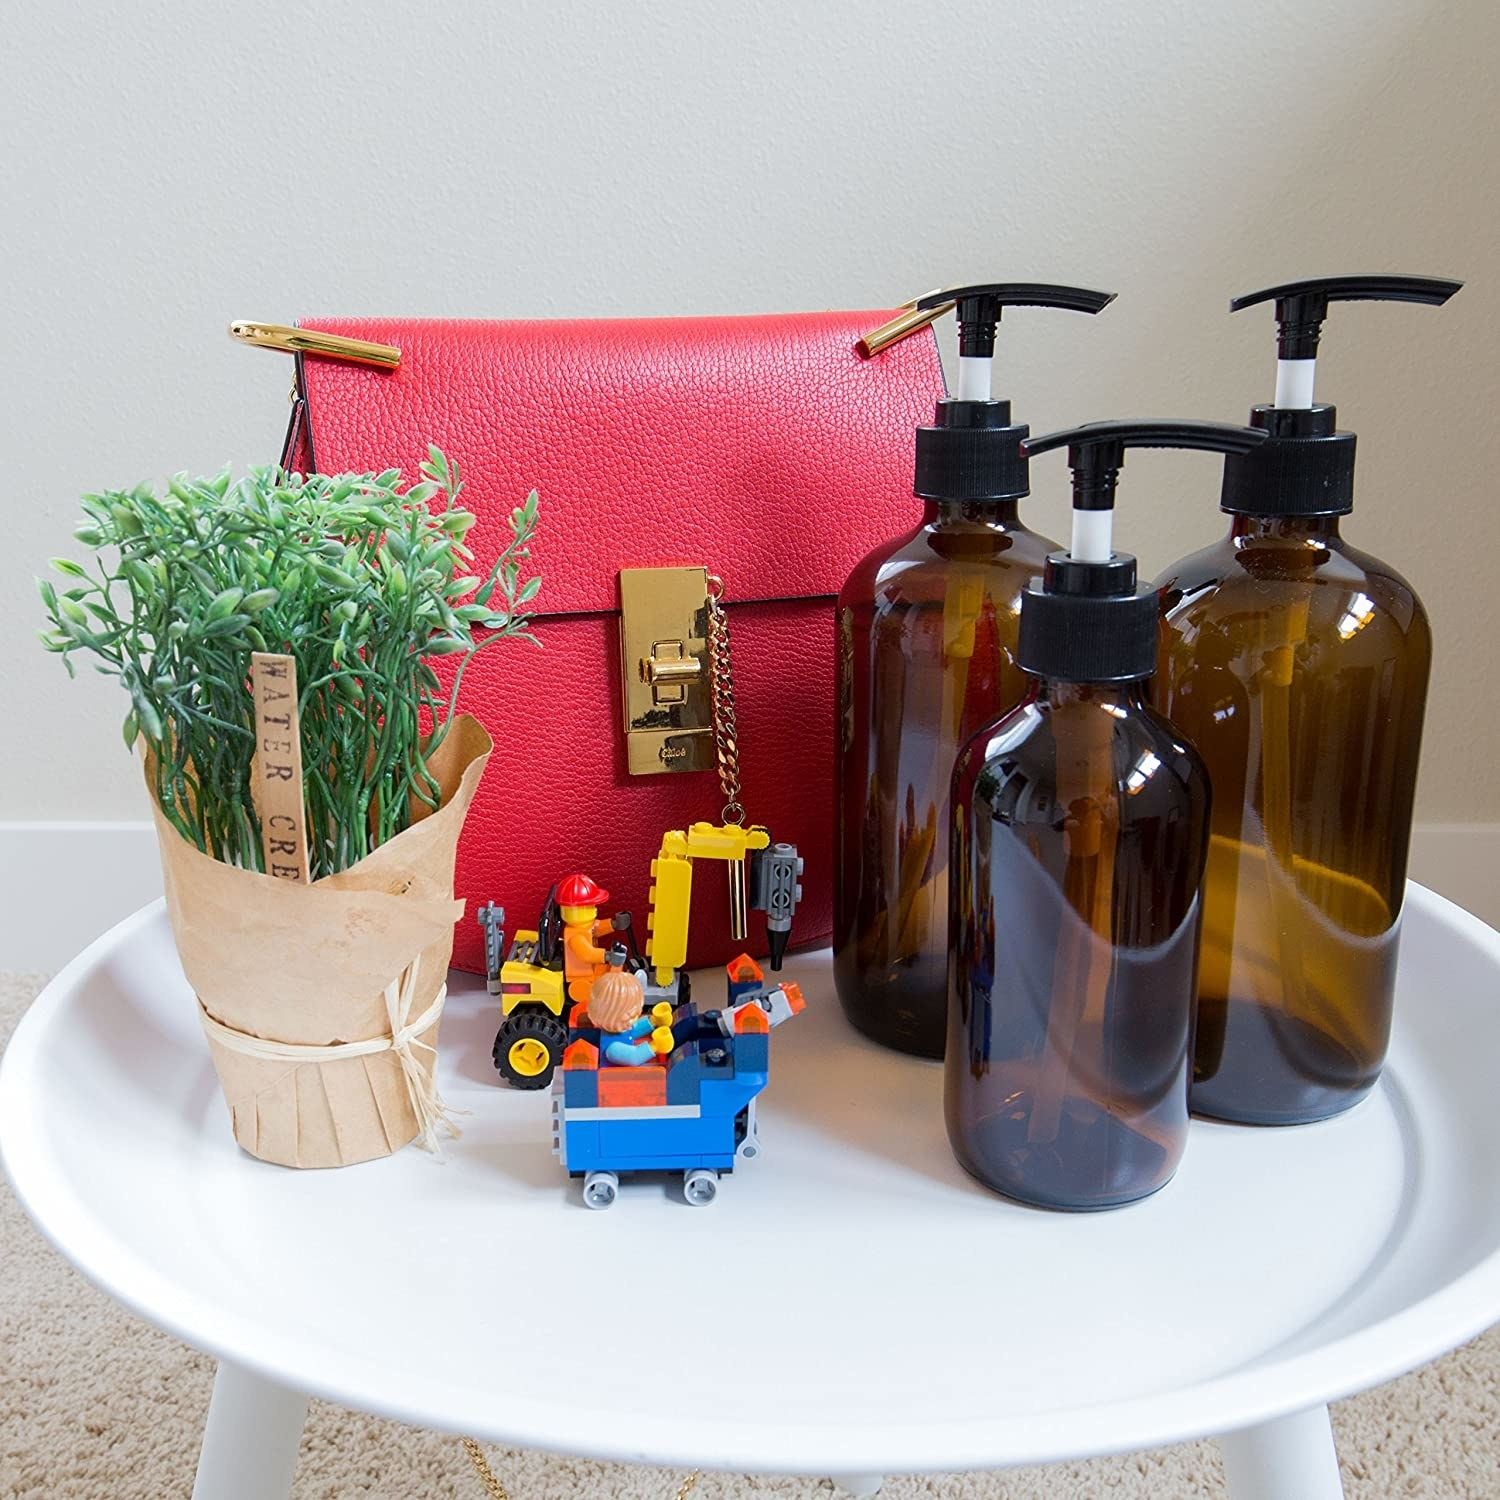 the bottles on a table next to a purse and plant